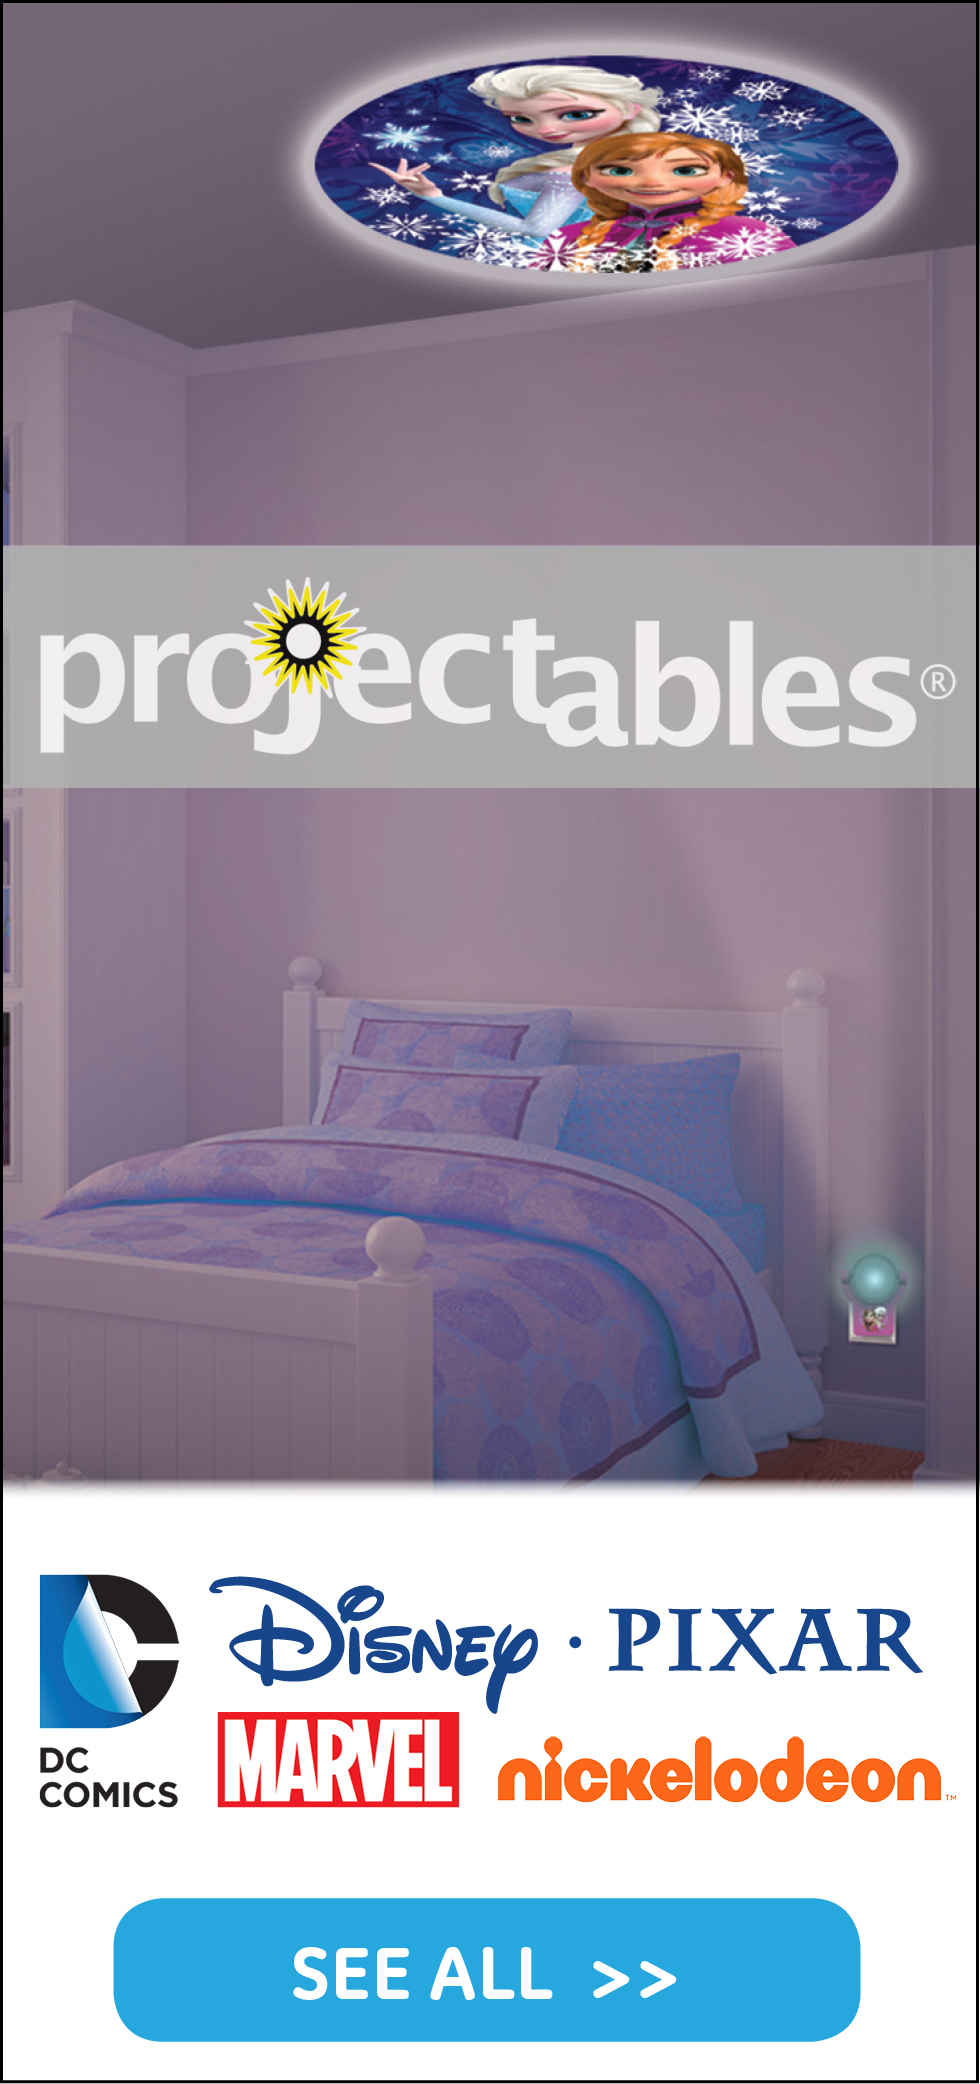 projectables-235x500-productmanual